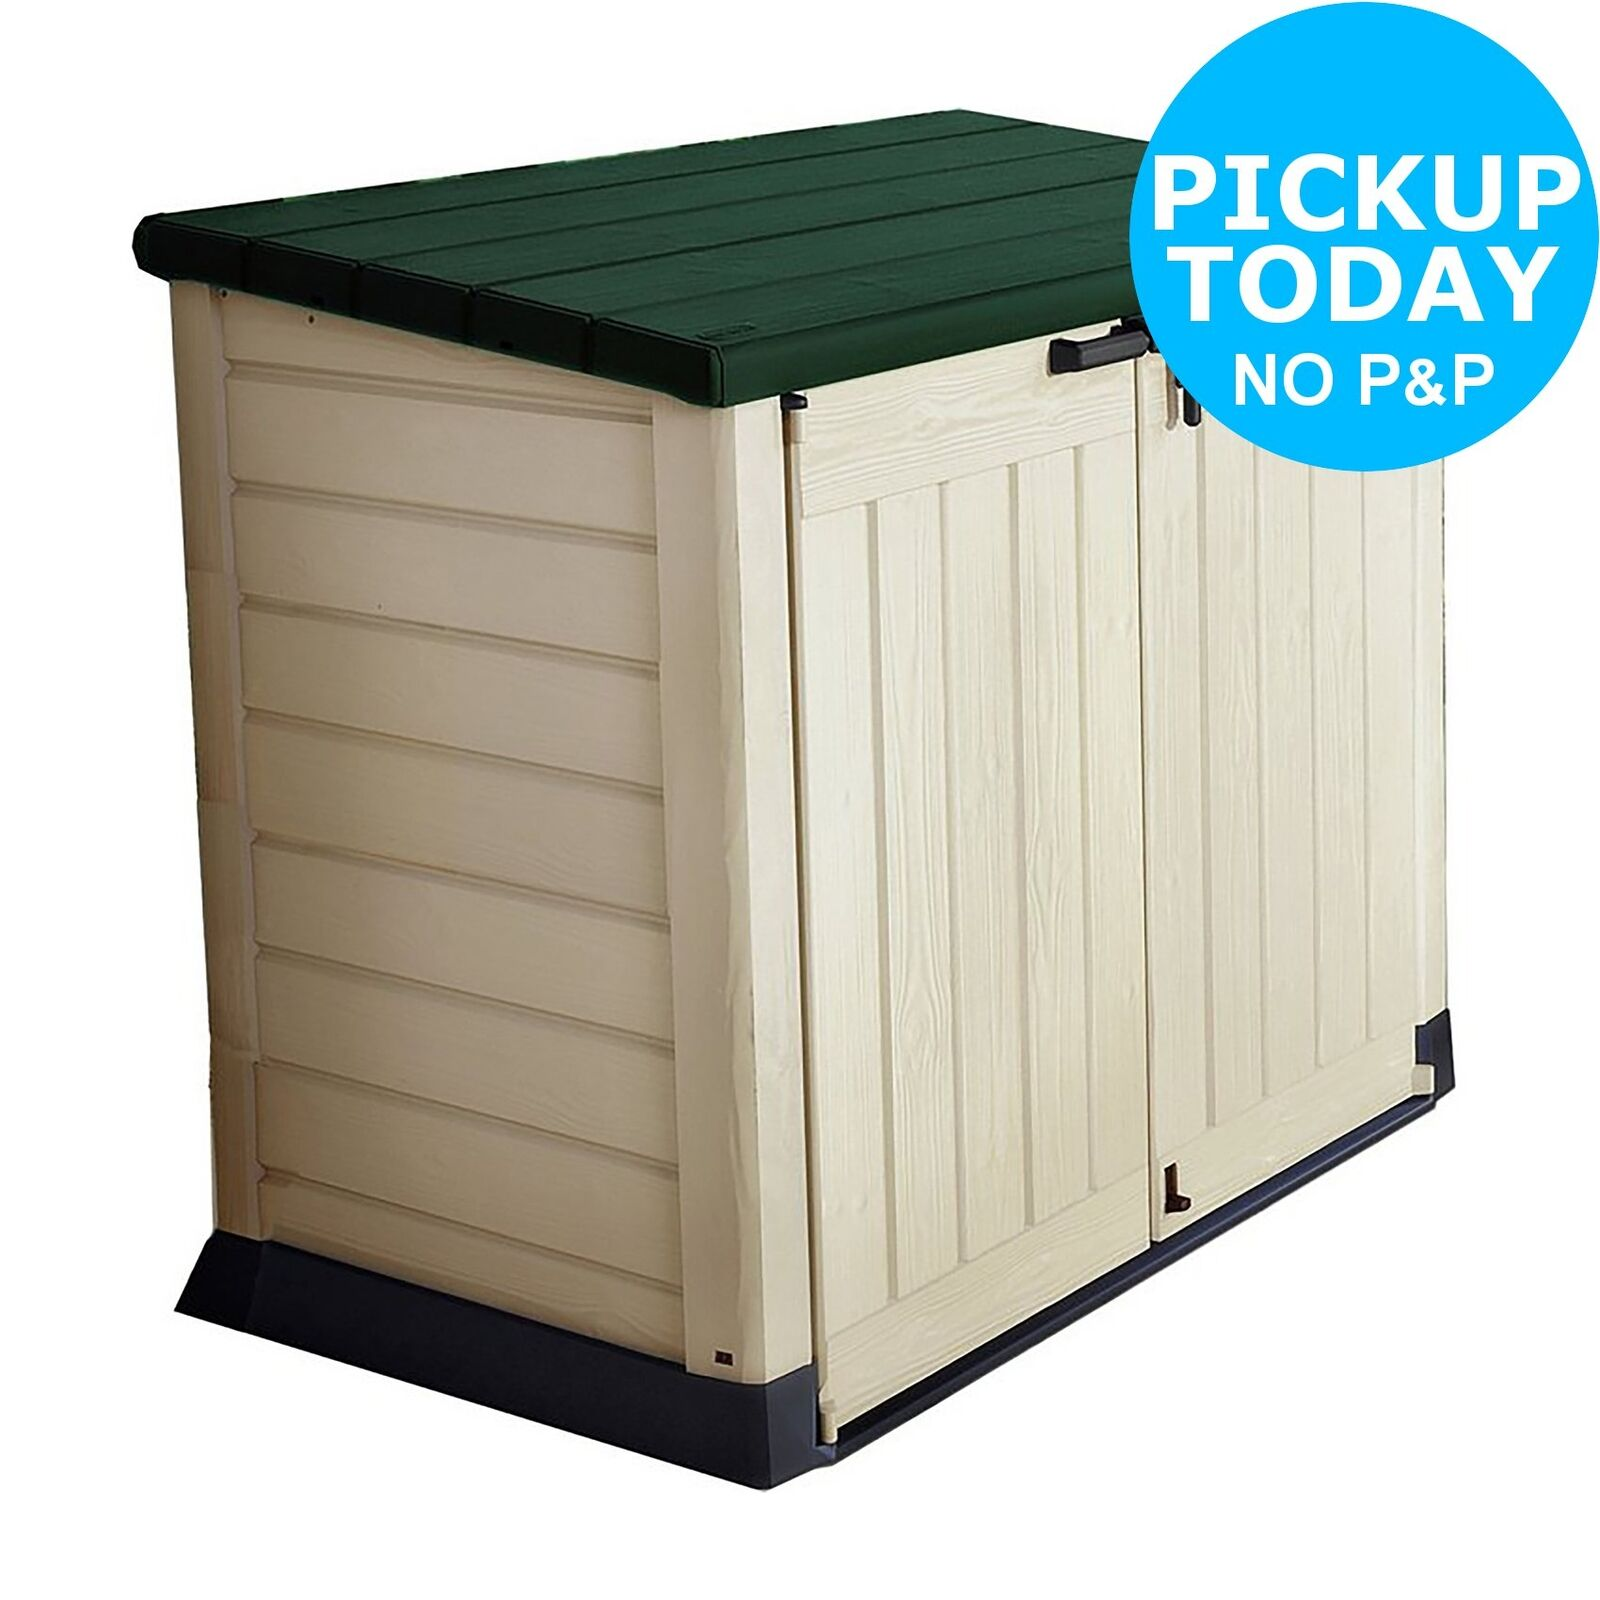 Keter Box Xxl Keter Store It Out Max 5x3 Plastic Garden Storage Shed Beige And Brown 17199416